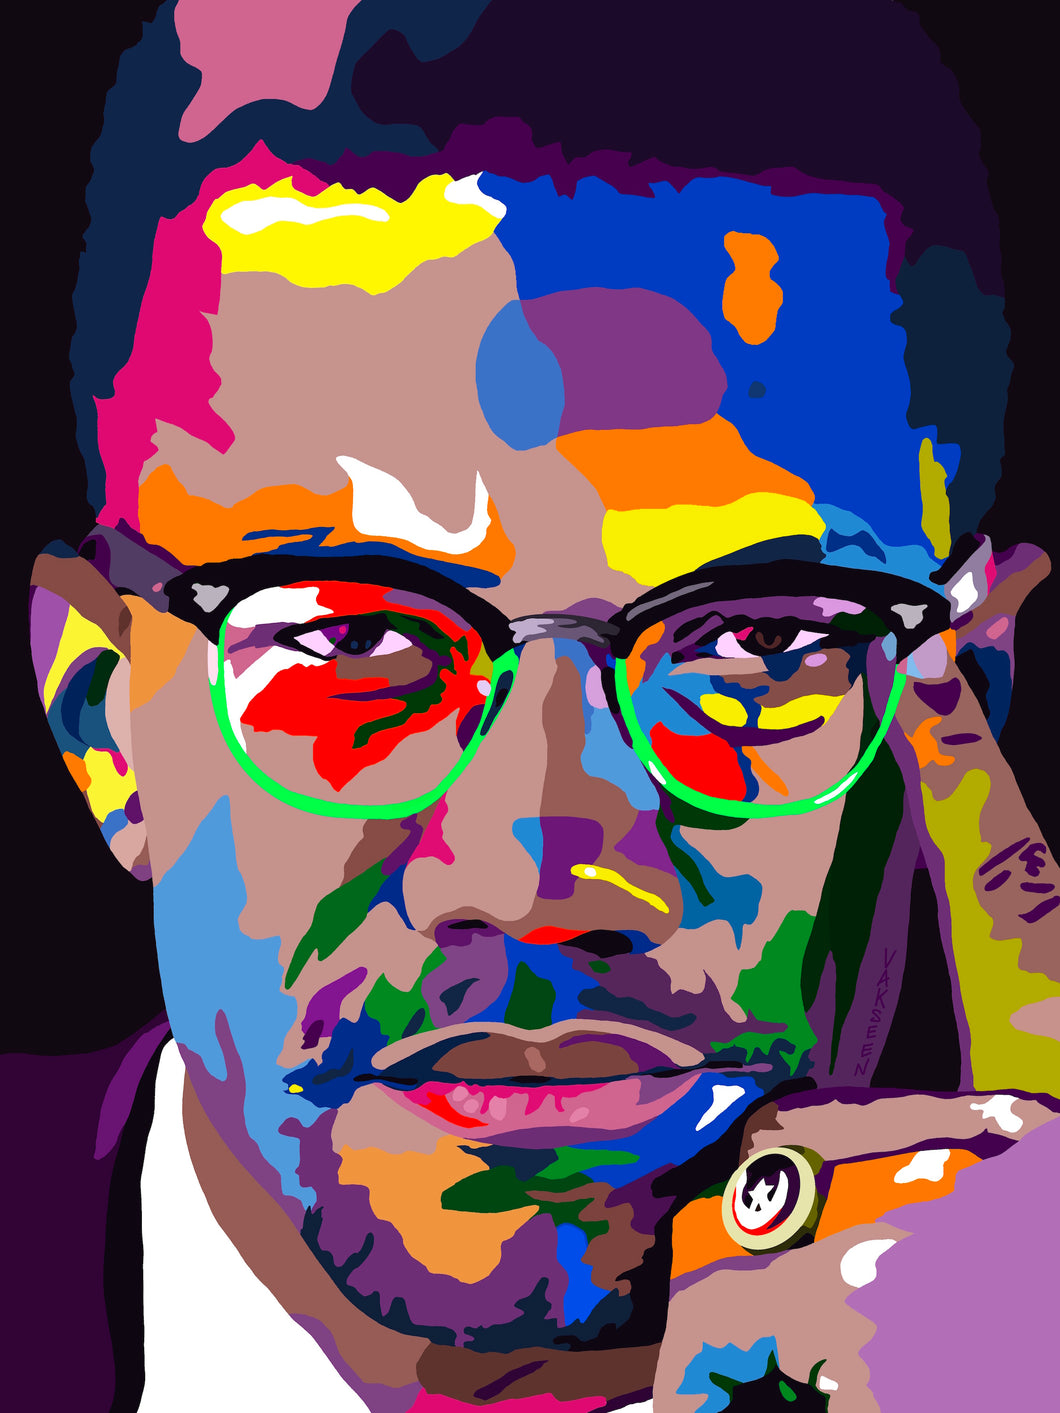 Vakseen Art - By Any Means - Malcolm X Portrait - Limited Edition Giclee Art Print & Wall Decor